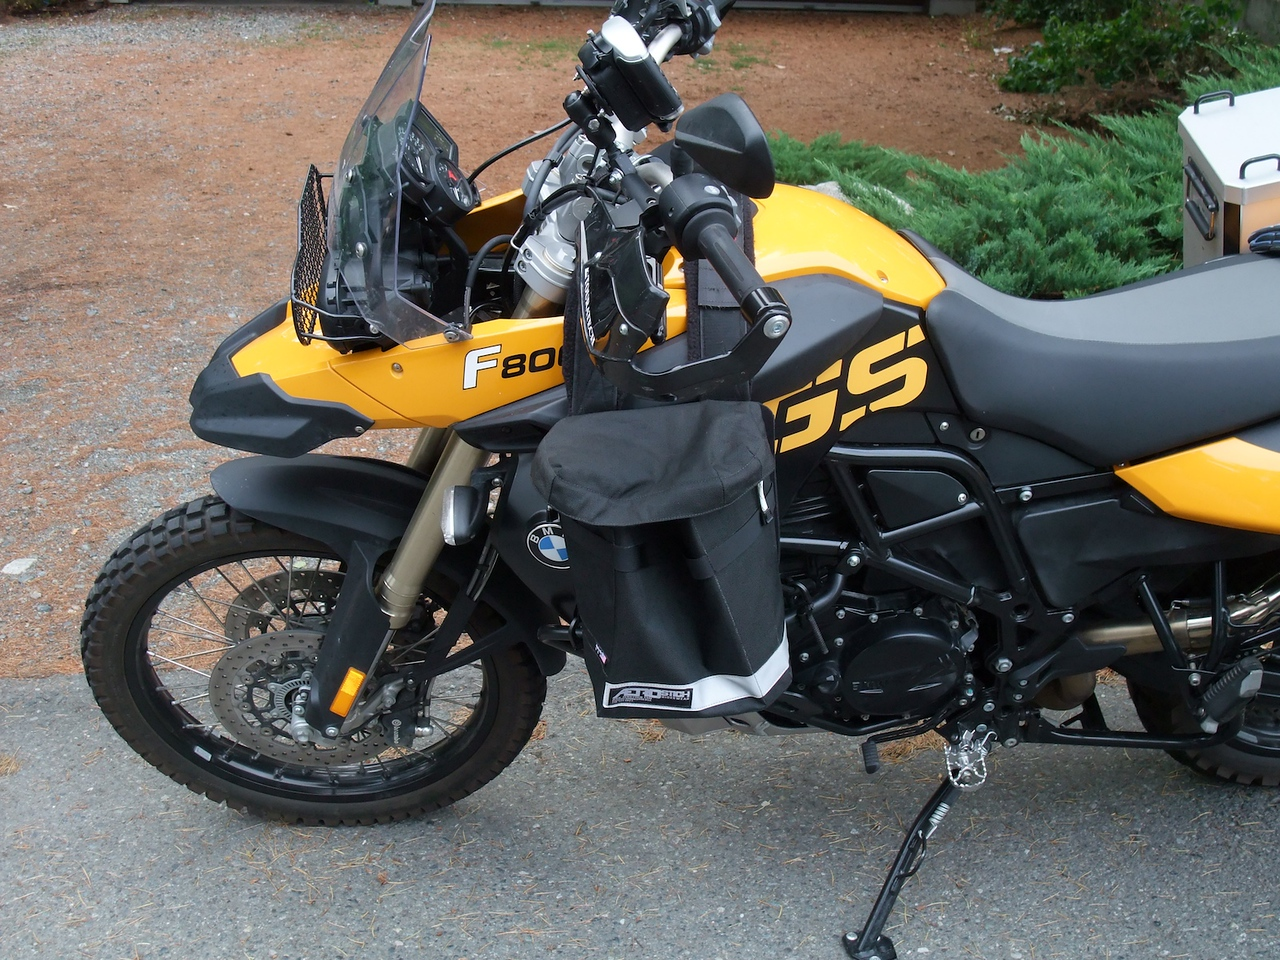 Checking out Aerostich tank panniers. Something smaller, higher, and more forward would be ideal.